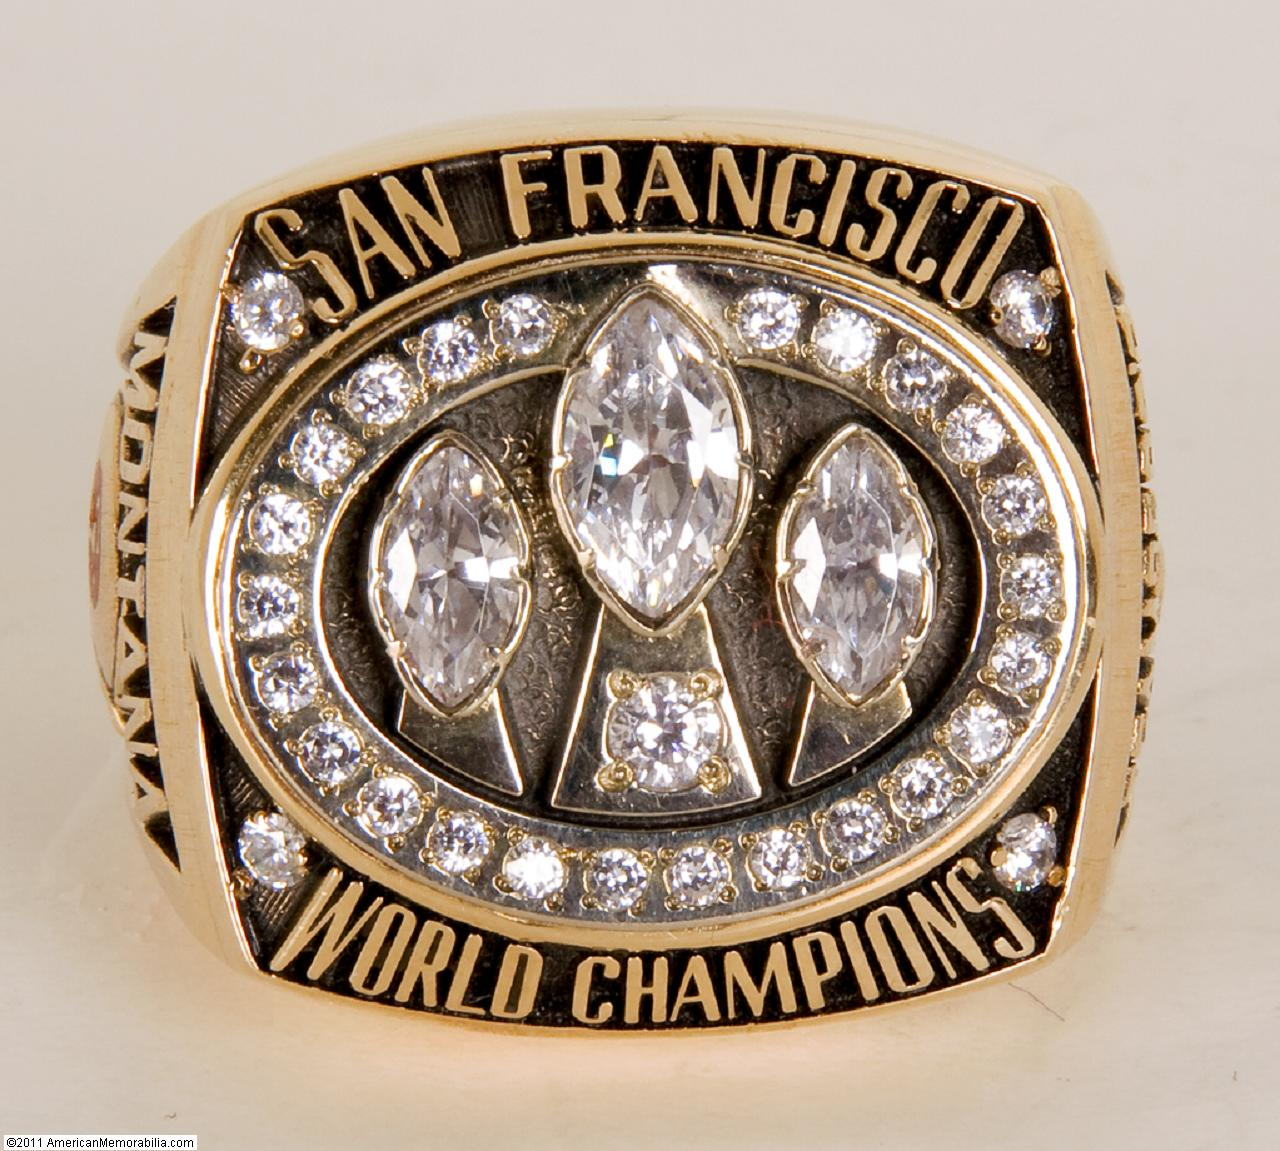 San Diego Chargers Box Score: Ranking The Most Blinged-Out Championship Rings In Sports